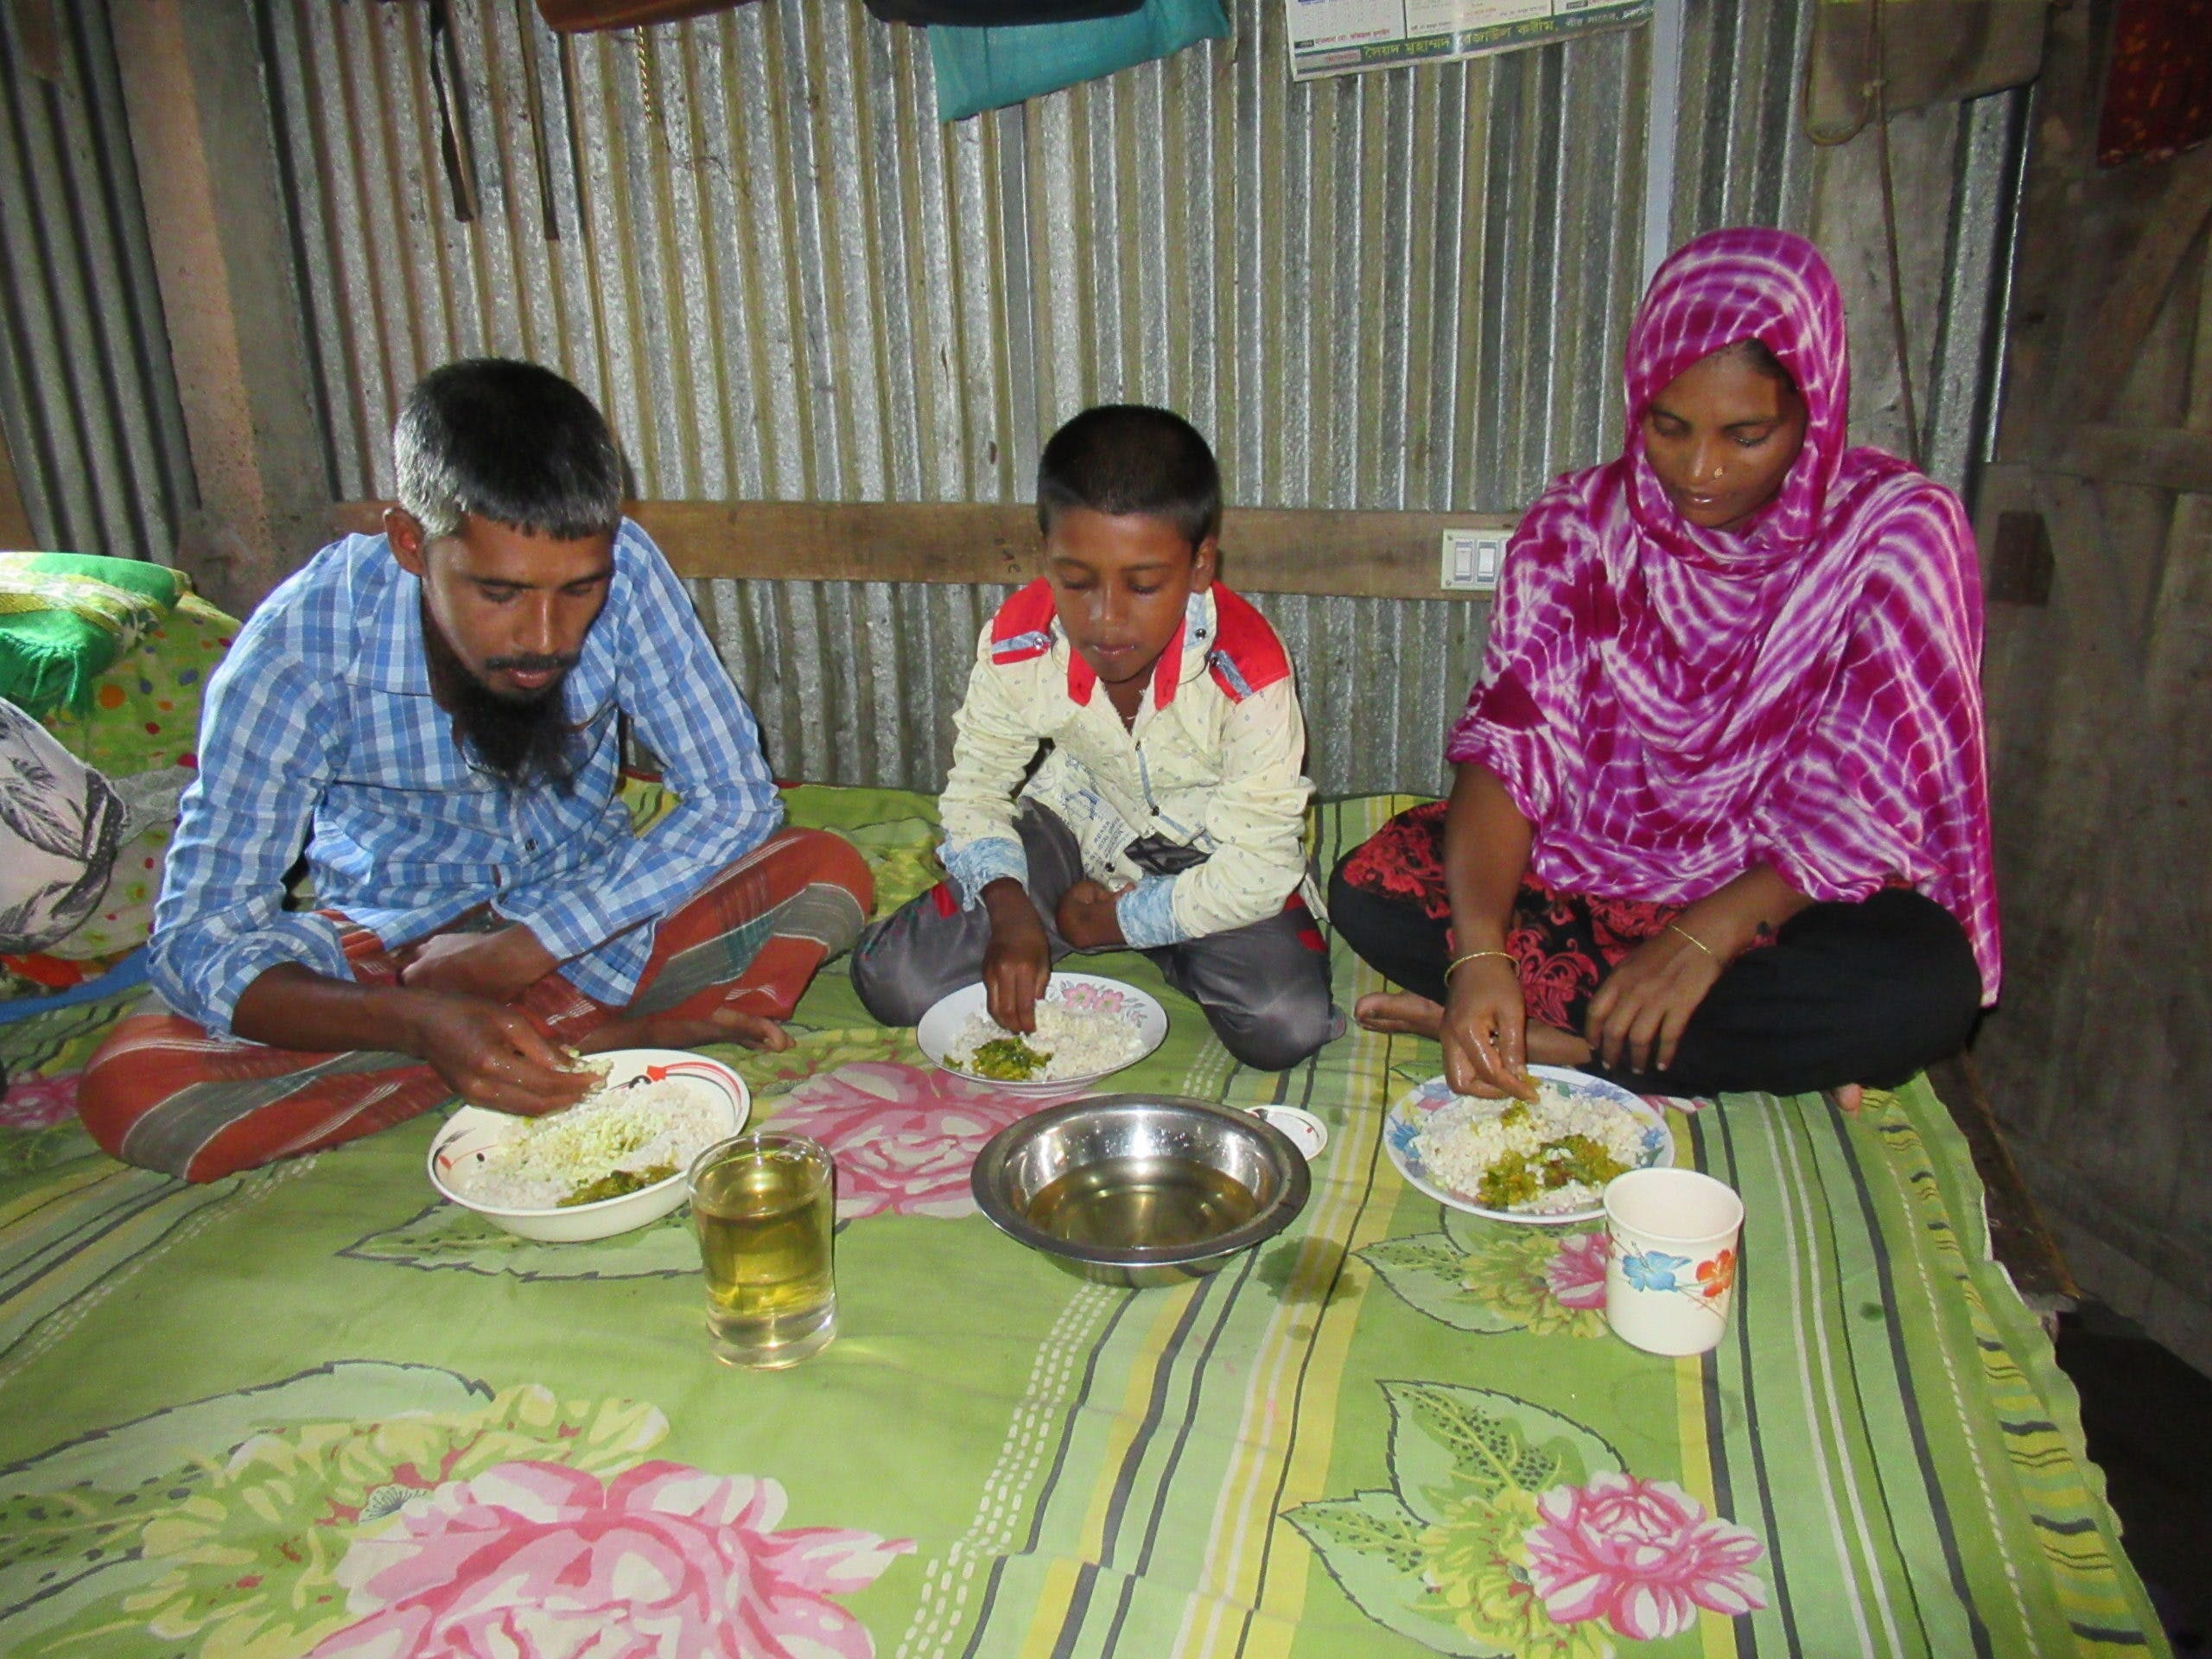 Mustakin and family eating dinner together